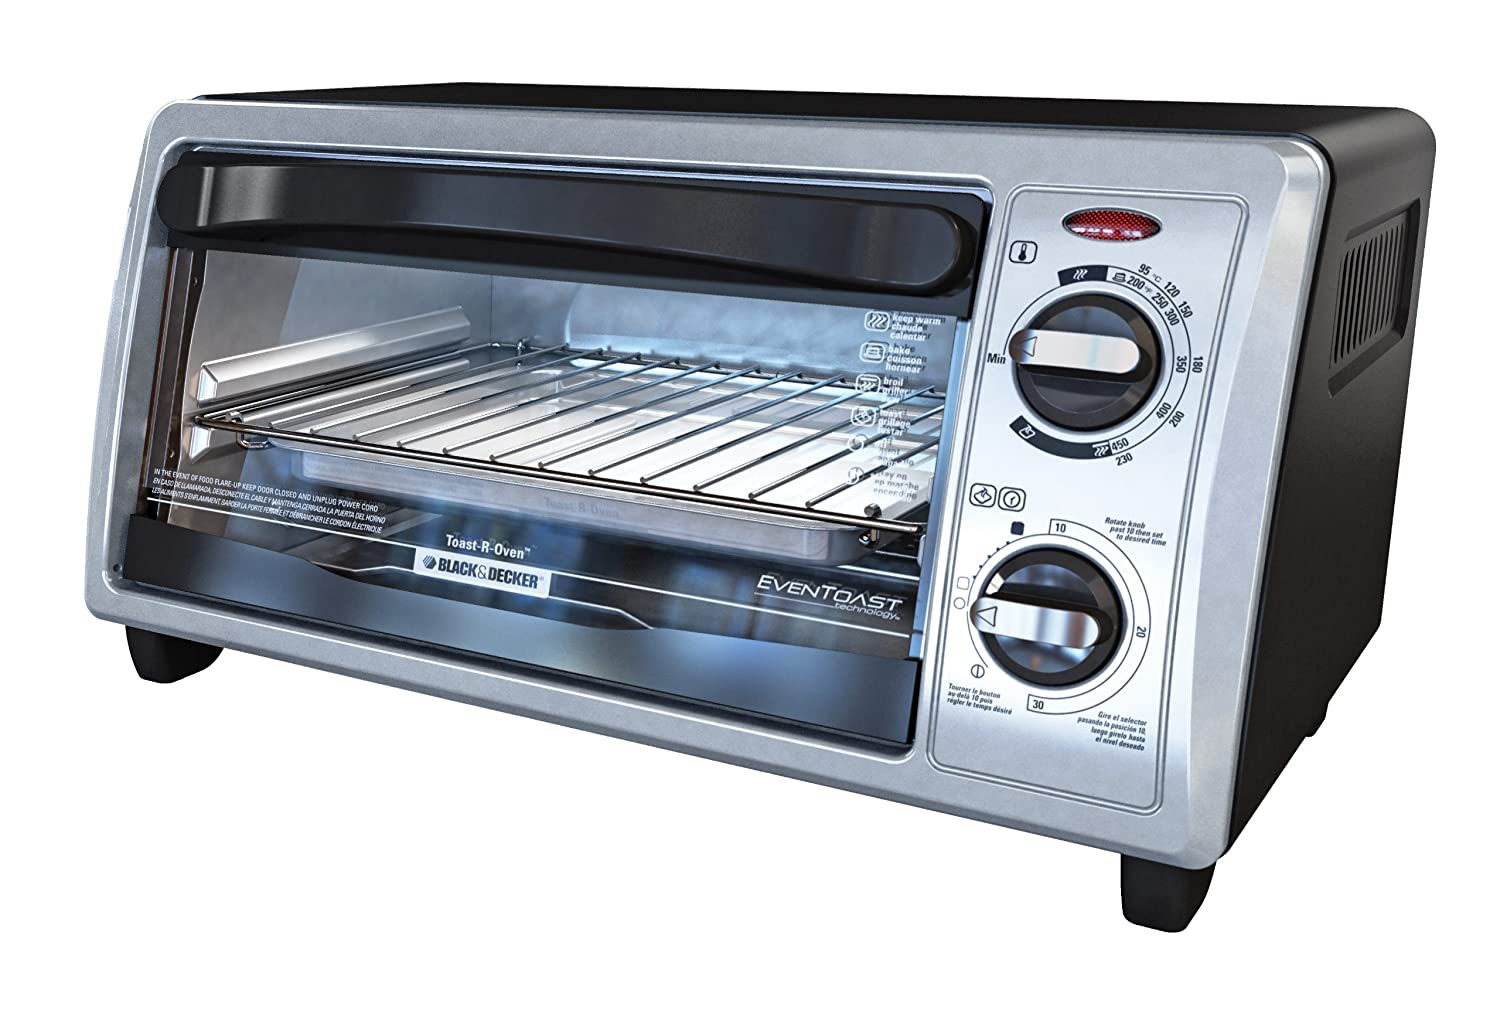 Amazon.com: BLACK+DECKER TO1332SBD 4-Slice Toaster Oven, Stainless ...